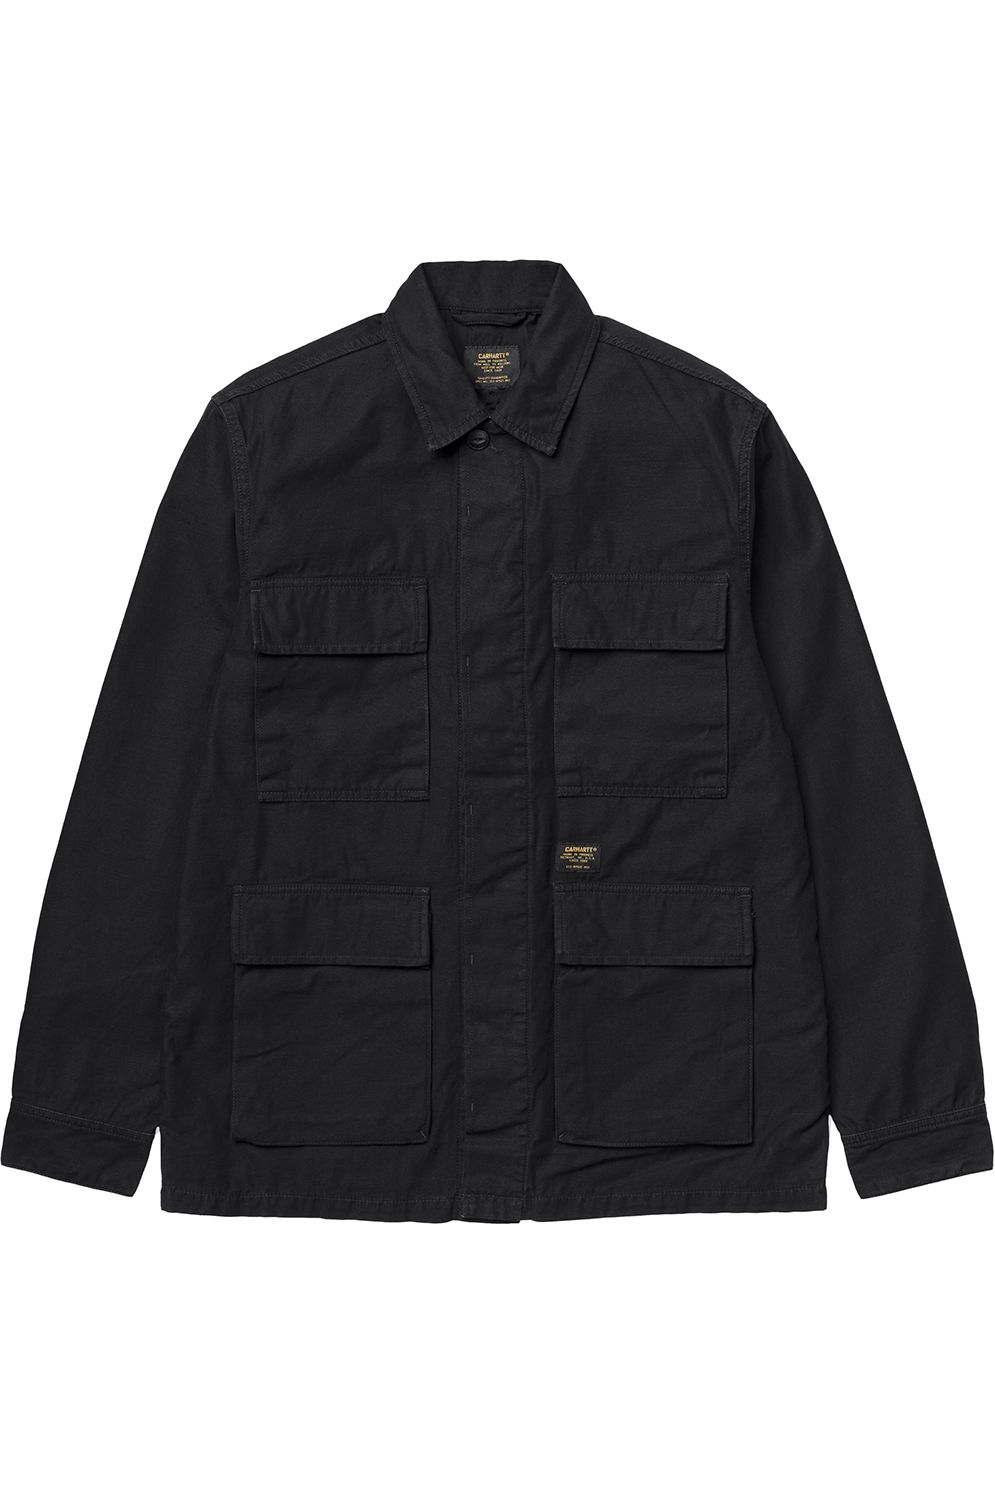 Blusão Carhartt WIP BALFOUR ANDY IRONS Black Stone Washed f38d4533ab1